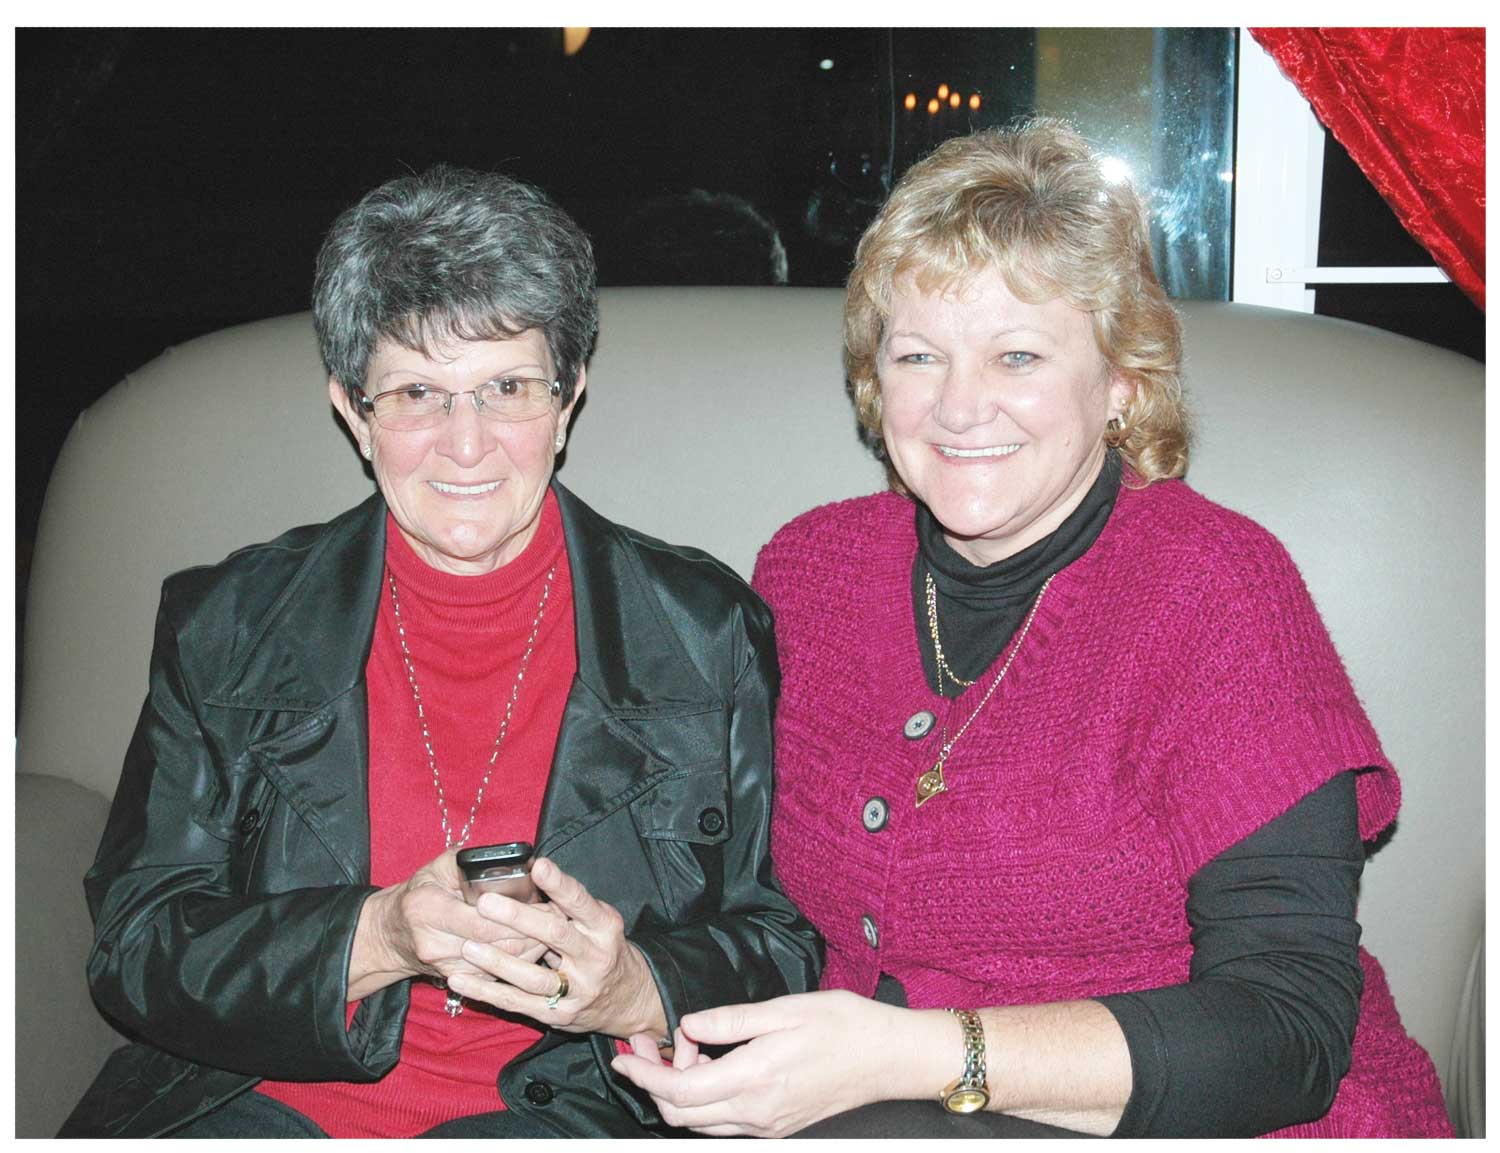 Martha Liebenberg (left), a senior citizen and a client of Bank Windhoek in Henties Bay, uses Bank Windhoek cellphone banking to do her banking transactions whenever and wherever she wants. She is with Elmarie Riekert, Branch Manager of Bank Windhoek in Henties Bay.